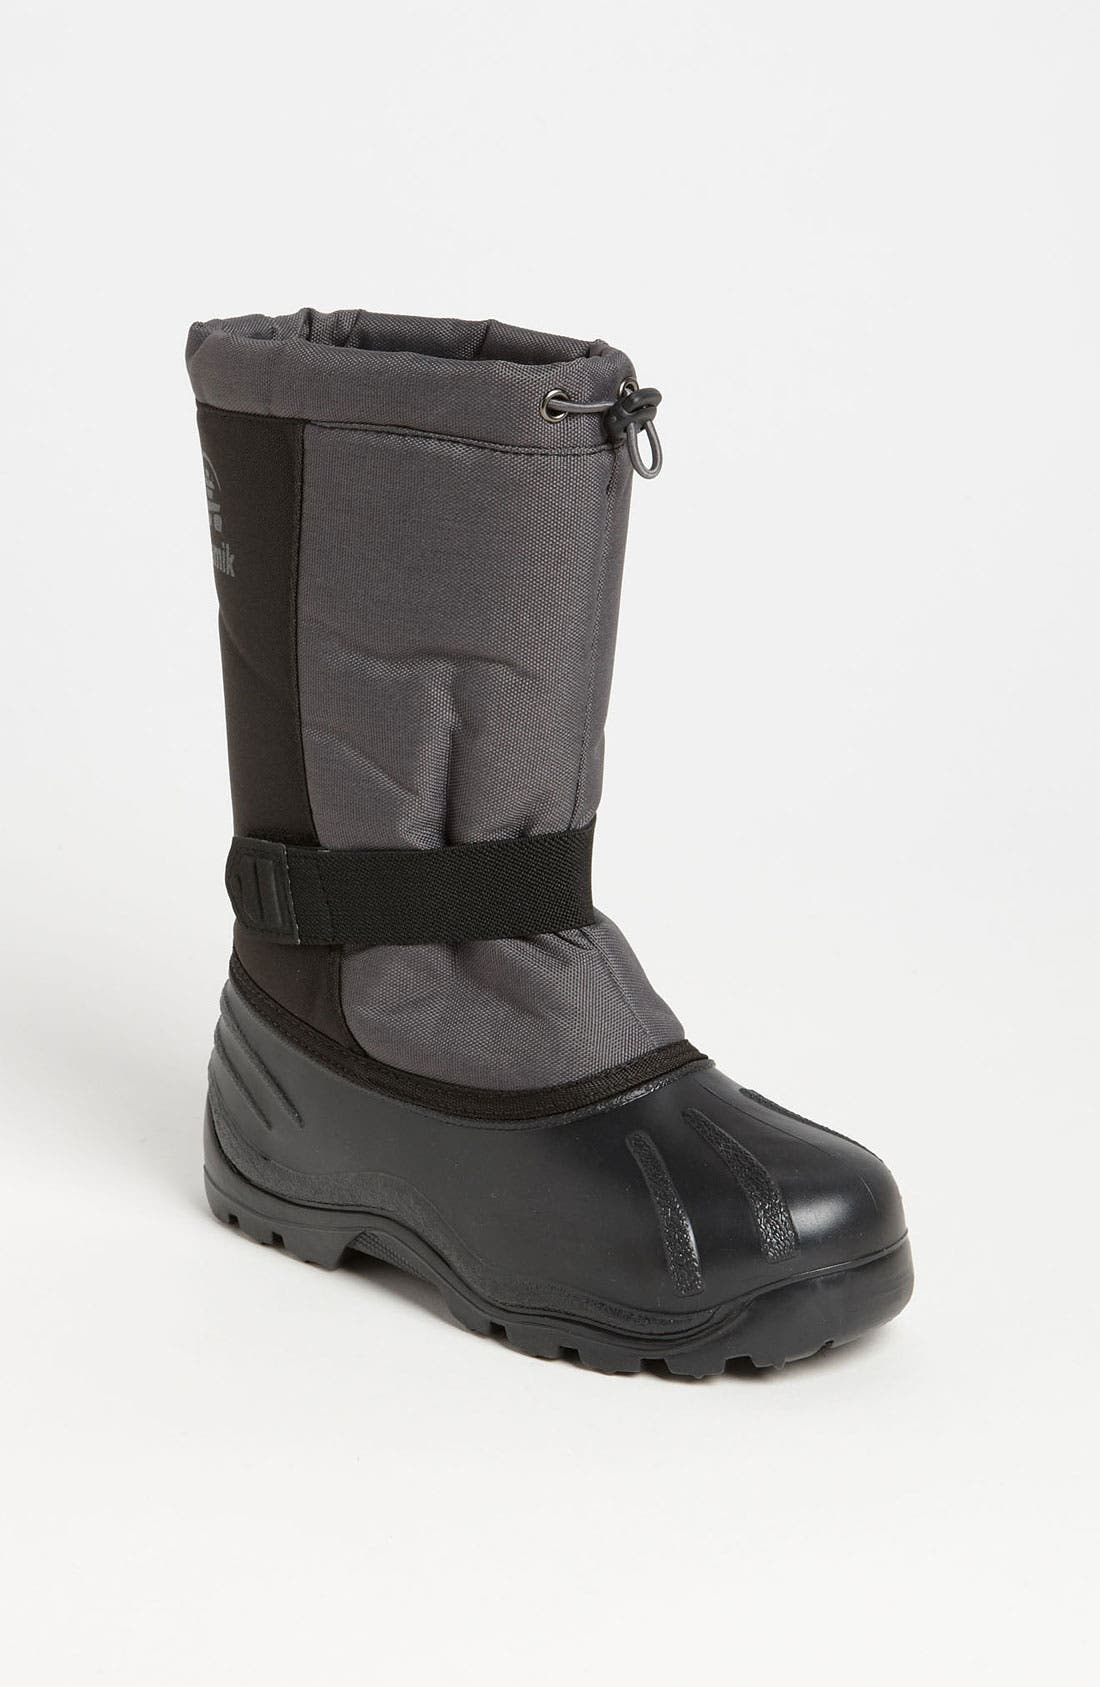 Alternate Image 1 Selected - Kamik 'Fireball' Snow Boot (Toddler, Little Kid & Big Kid)(Special Purchase)